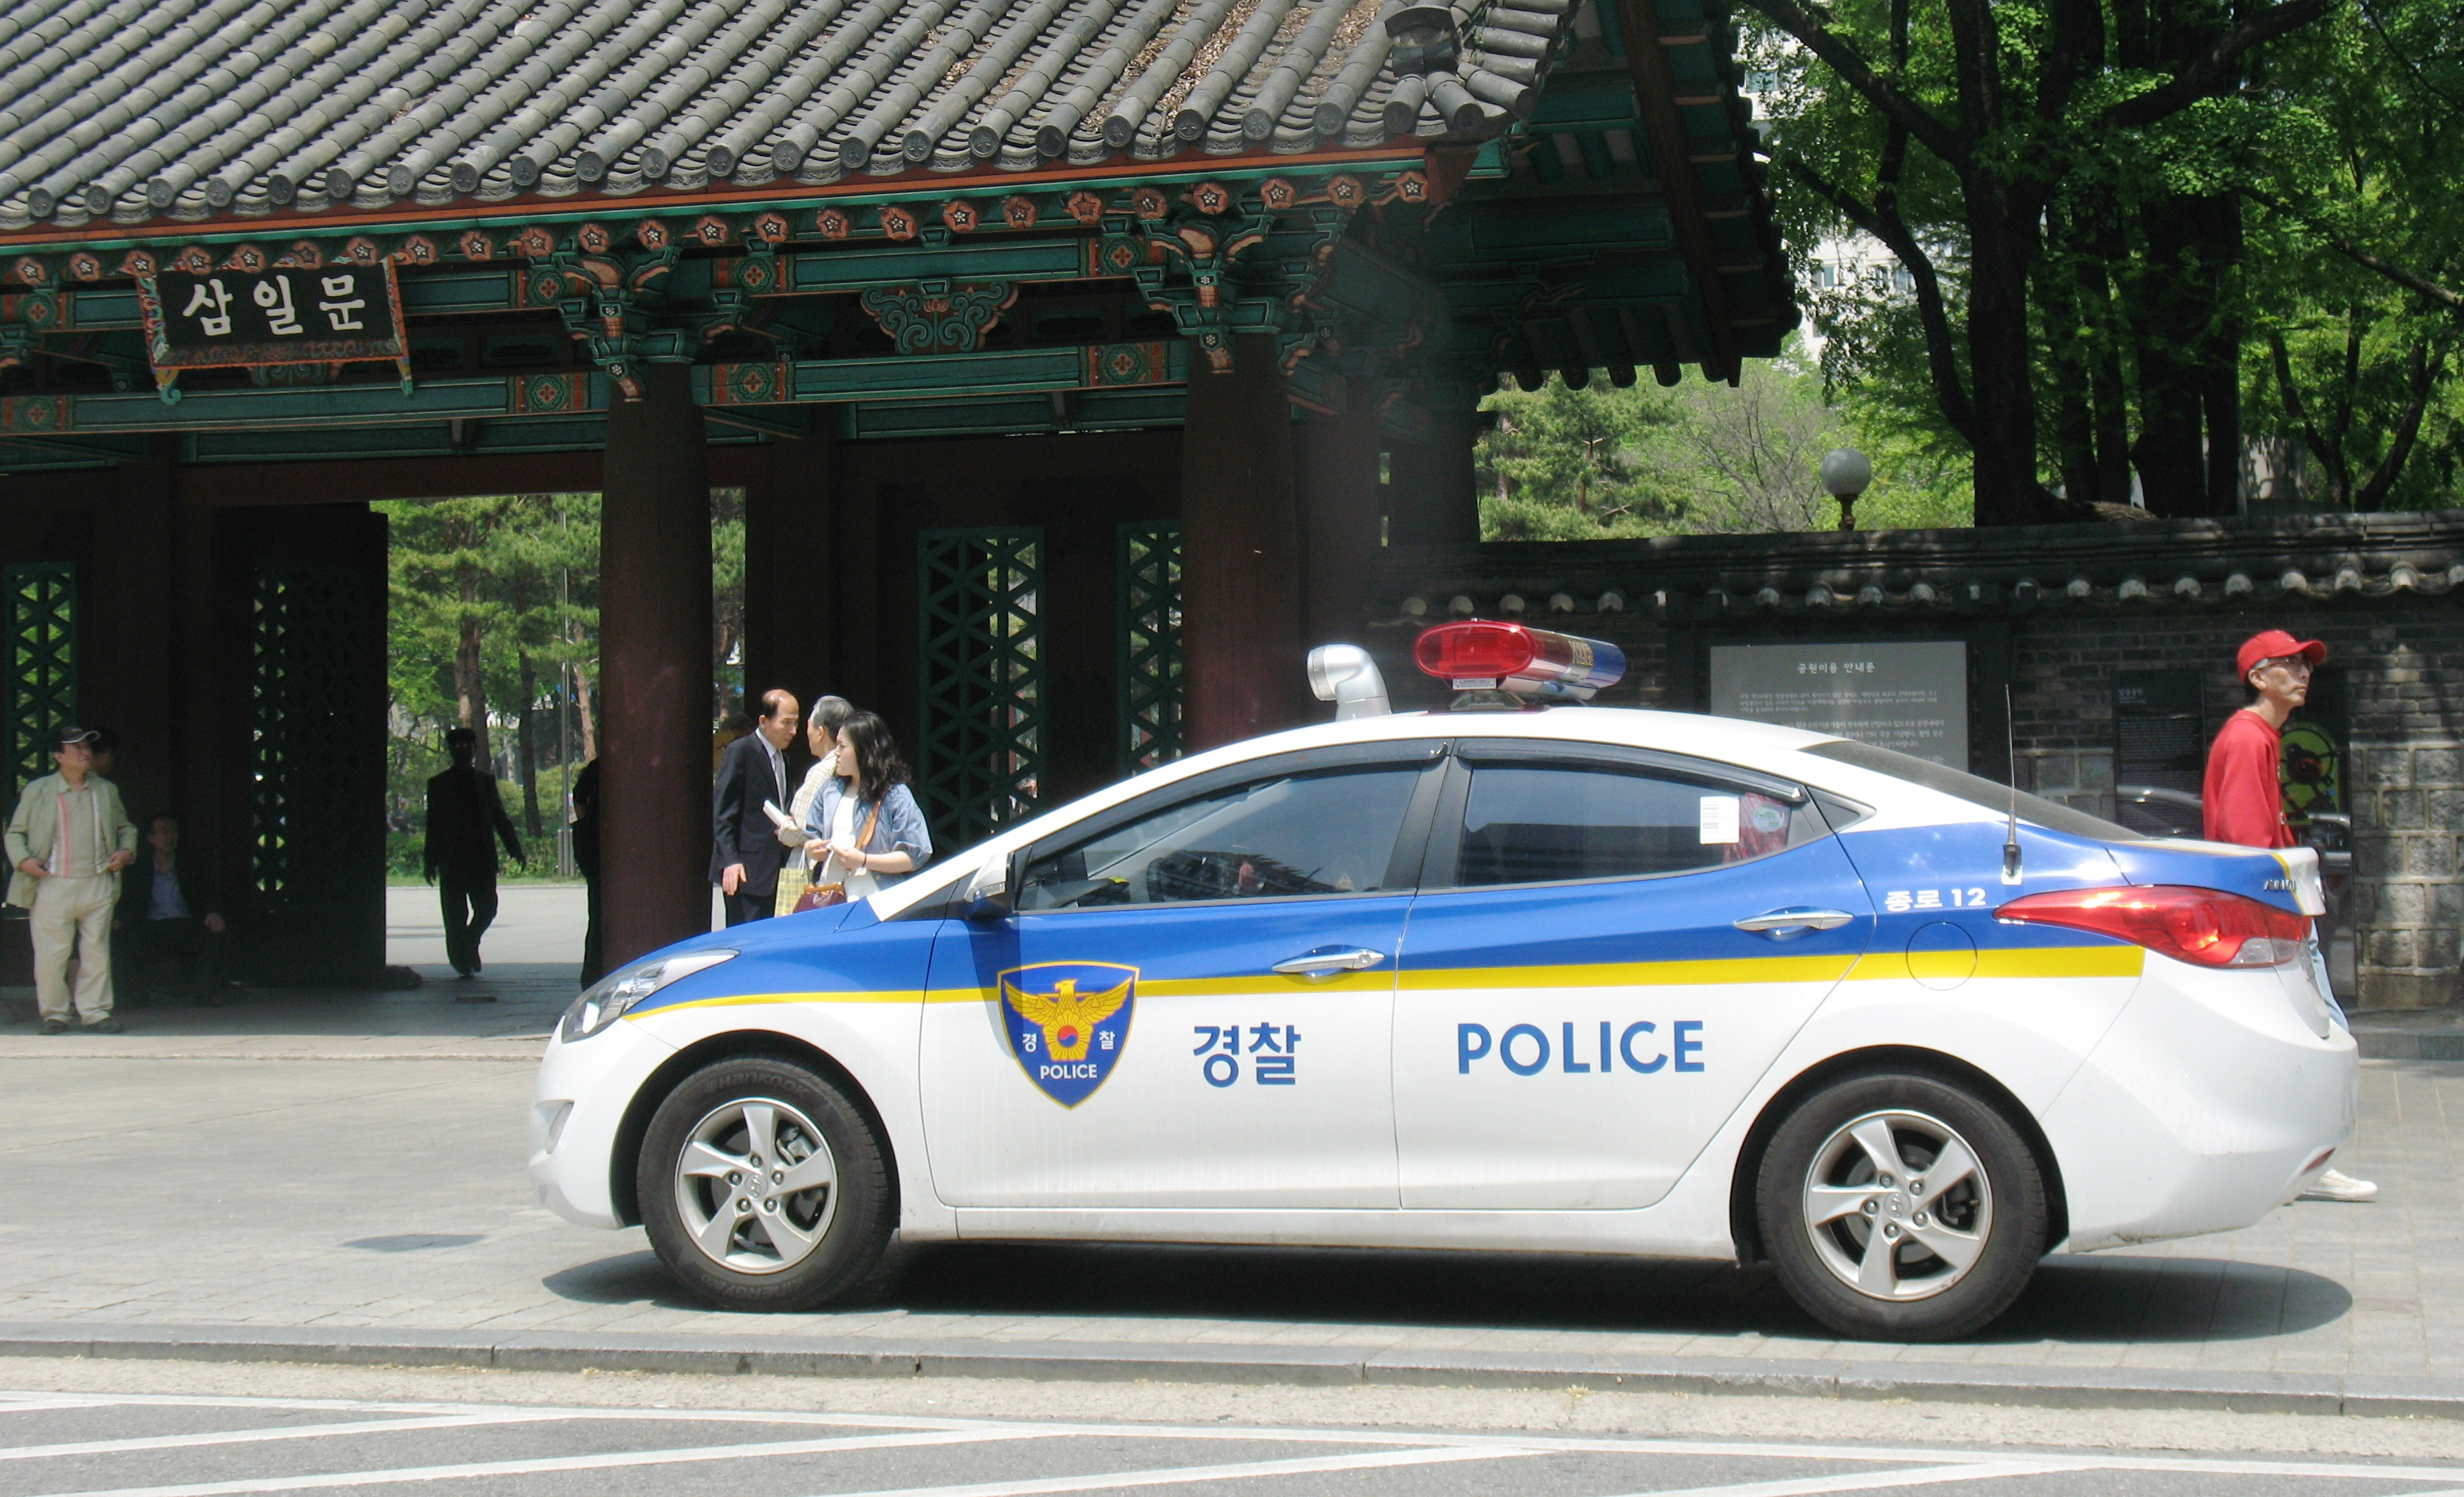 A police car in Seoul, South Korea. (Photo by ProjectManhattan via Wikimedia Commons)